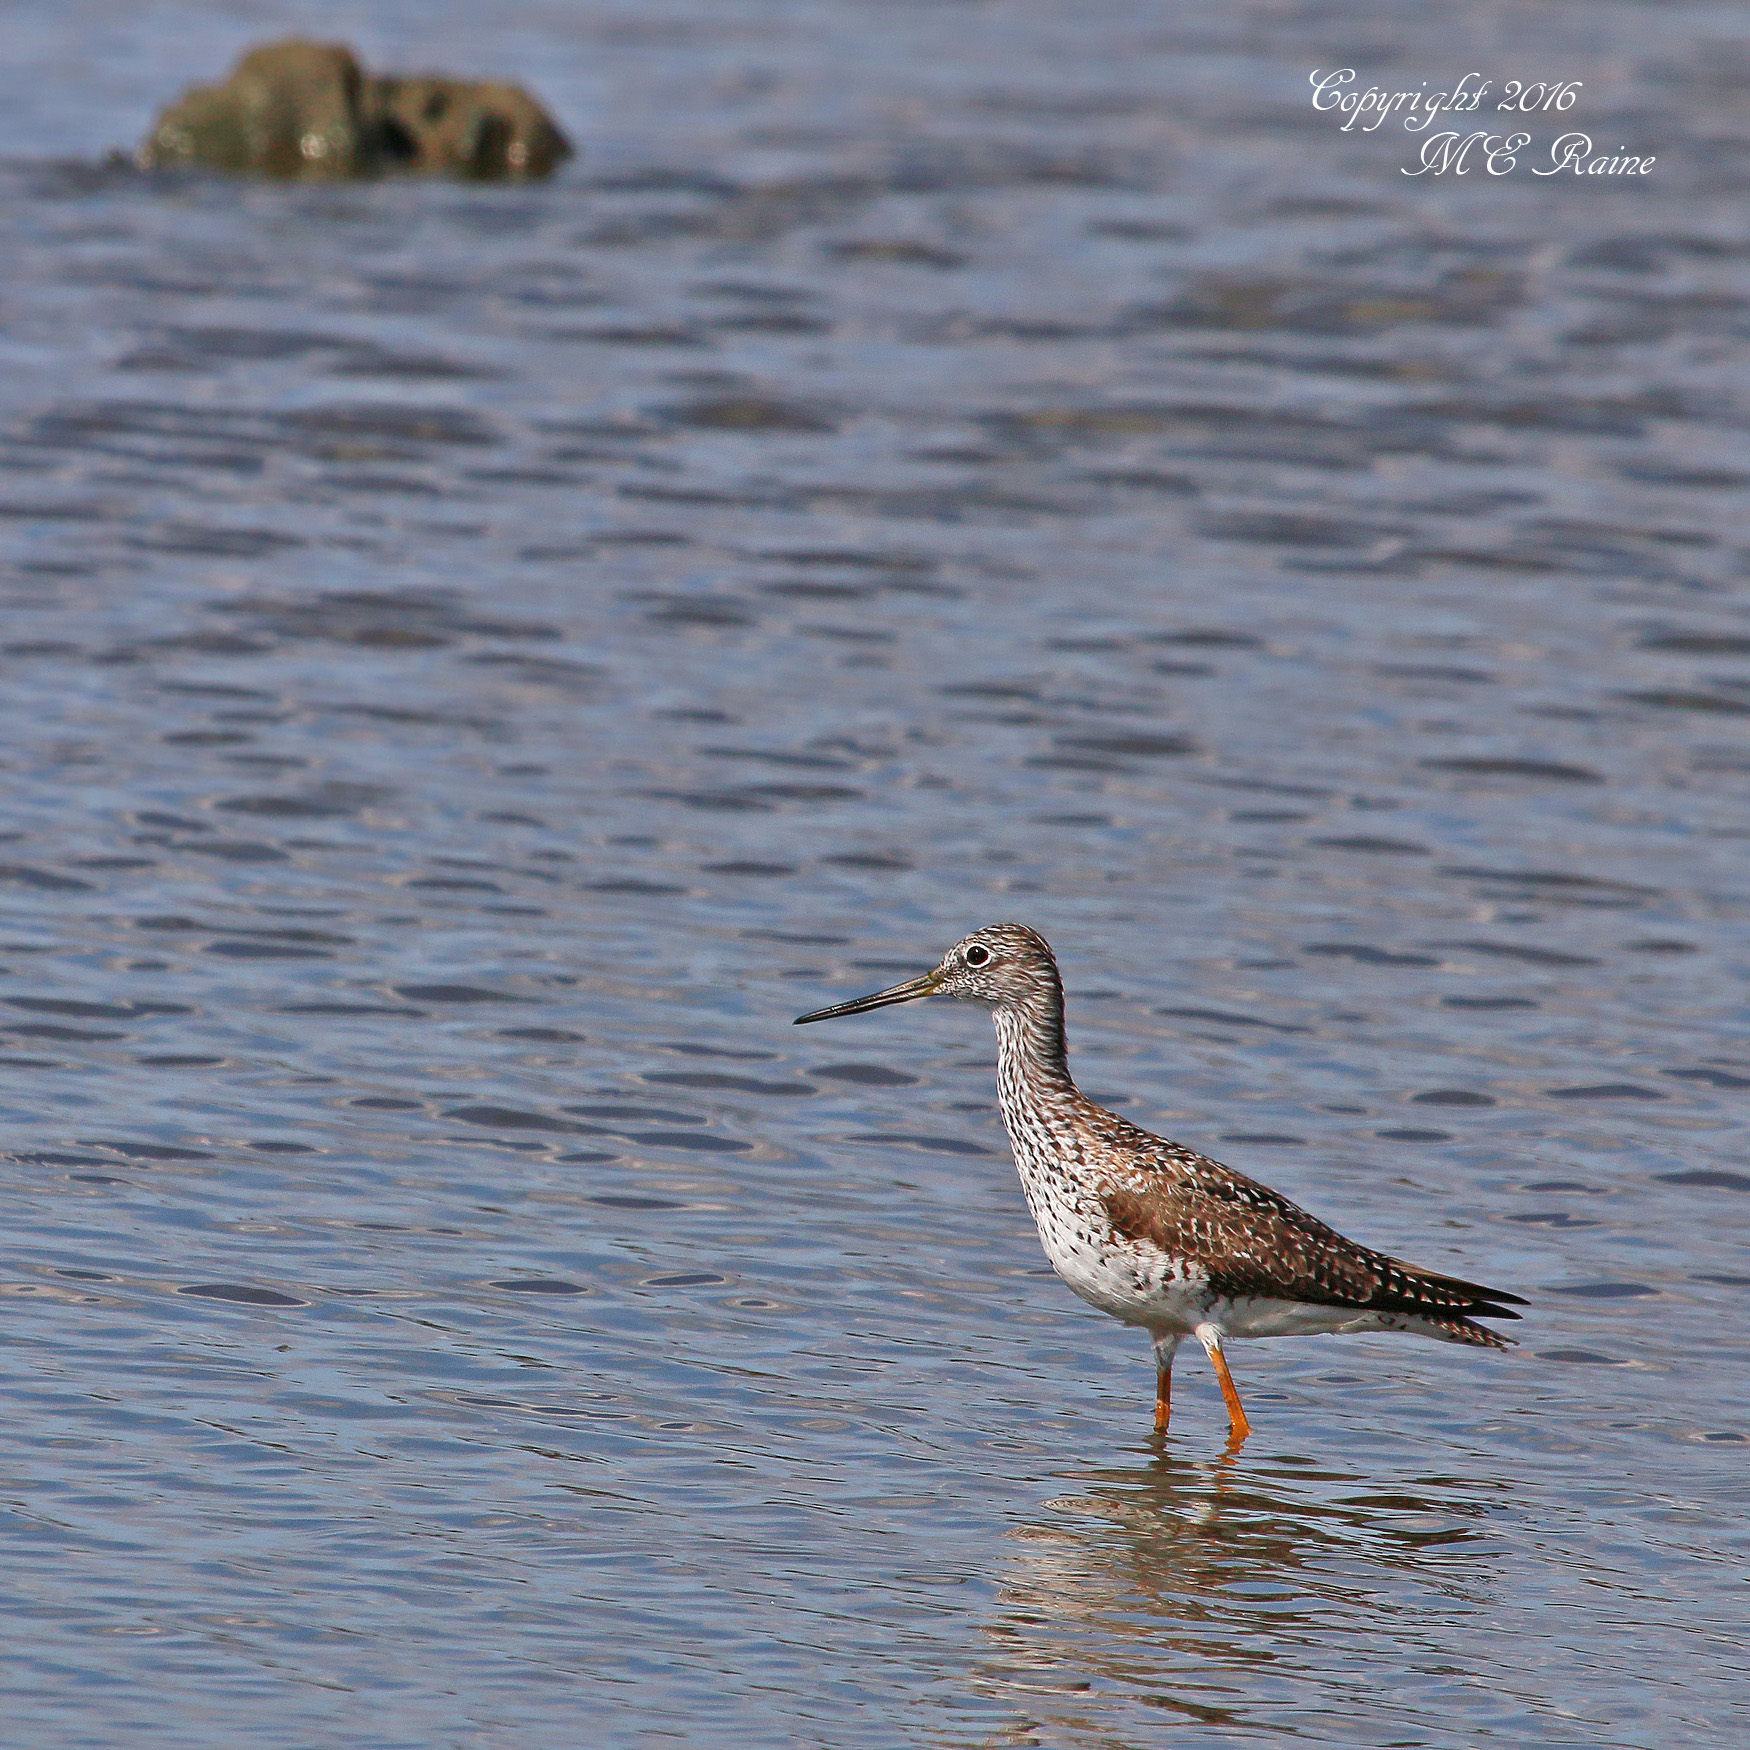 MCM Greater yellowlegs mickey 4.1.16